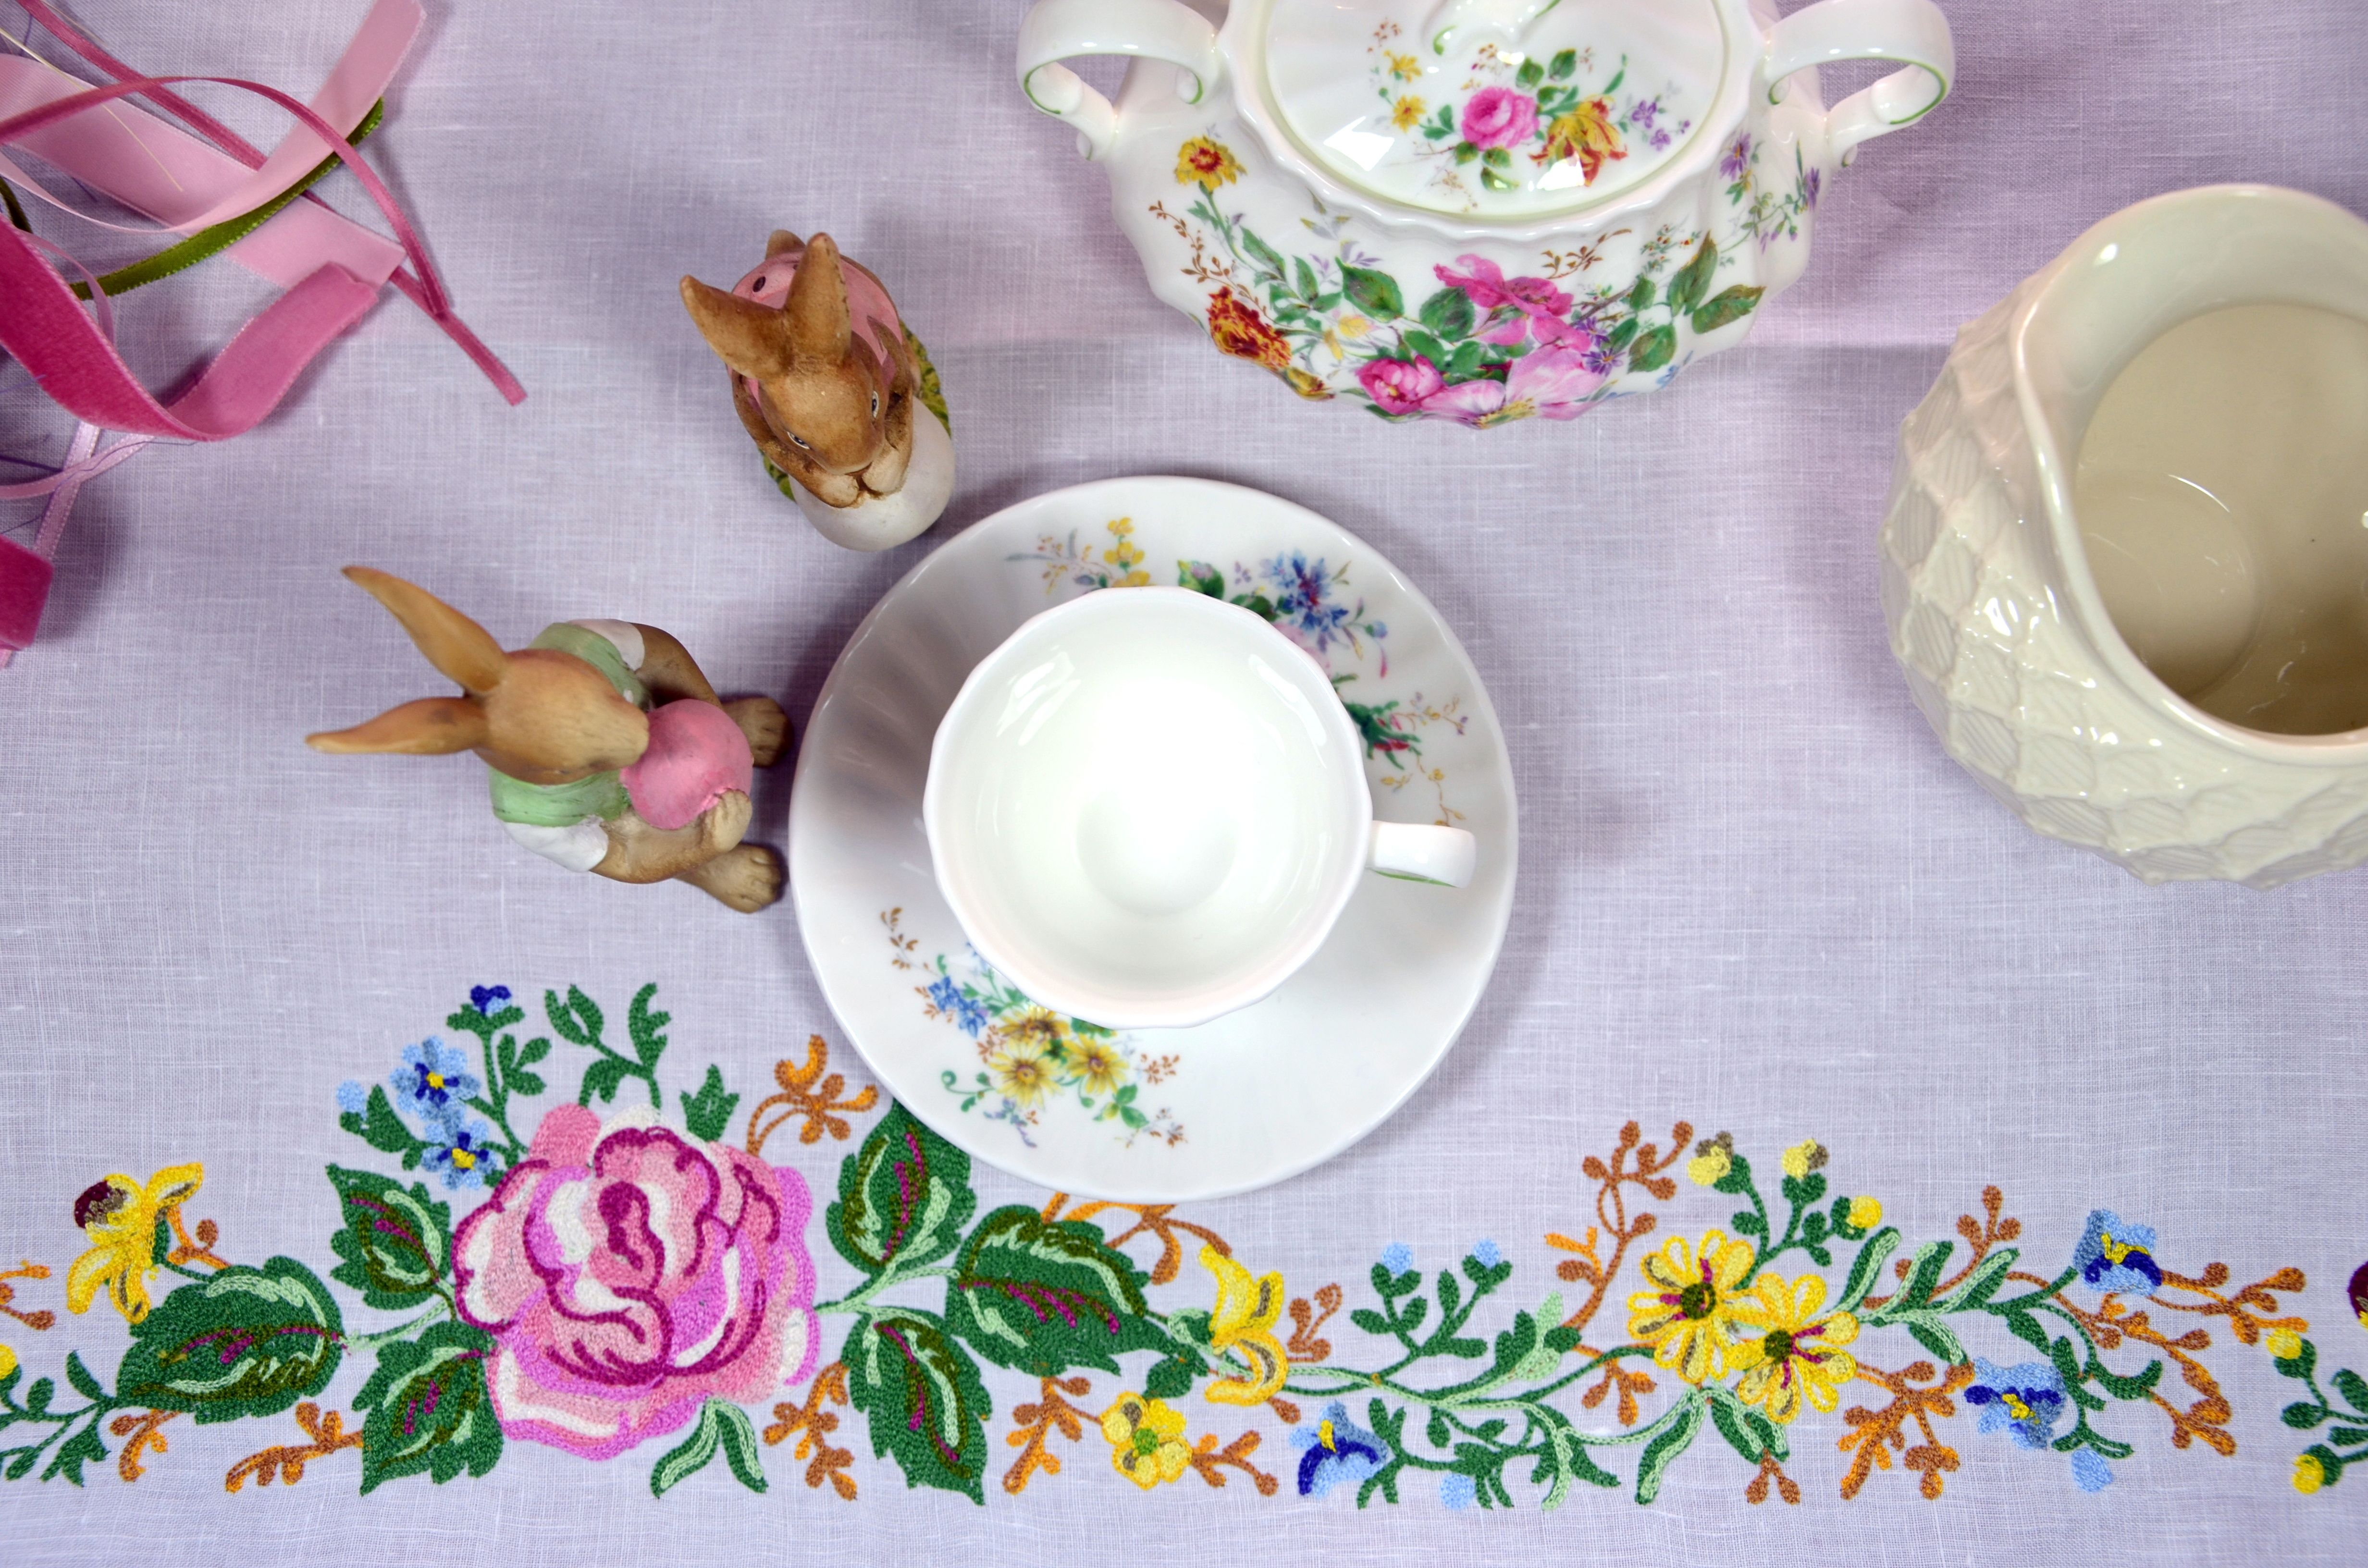 Embroidered tablecloth and porcelain tea cup!